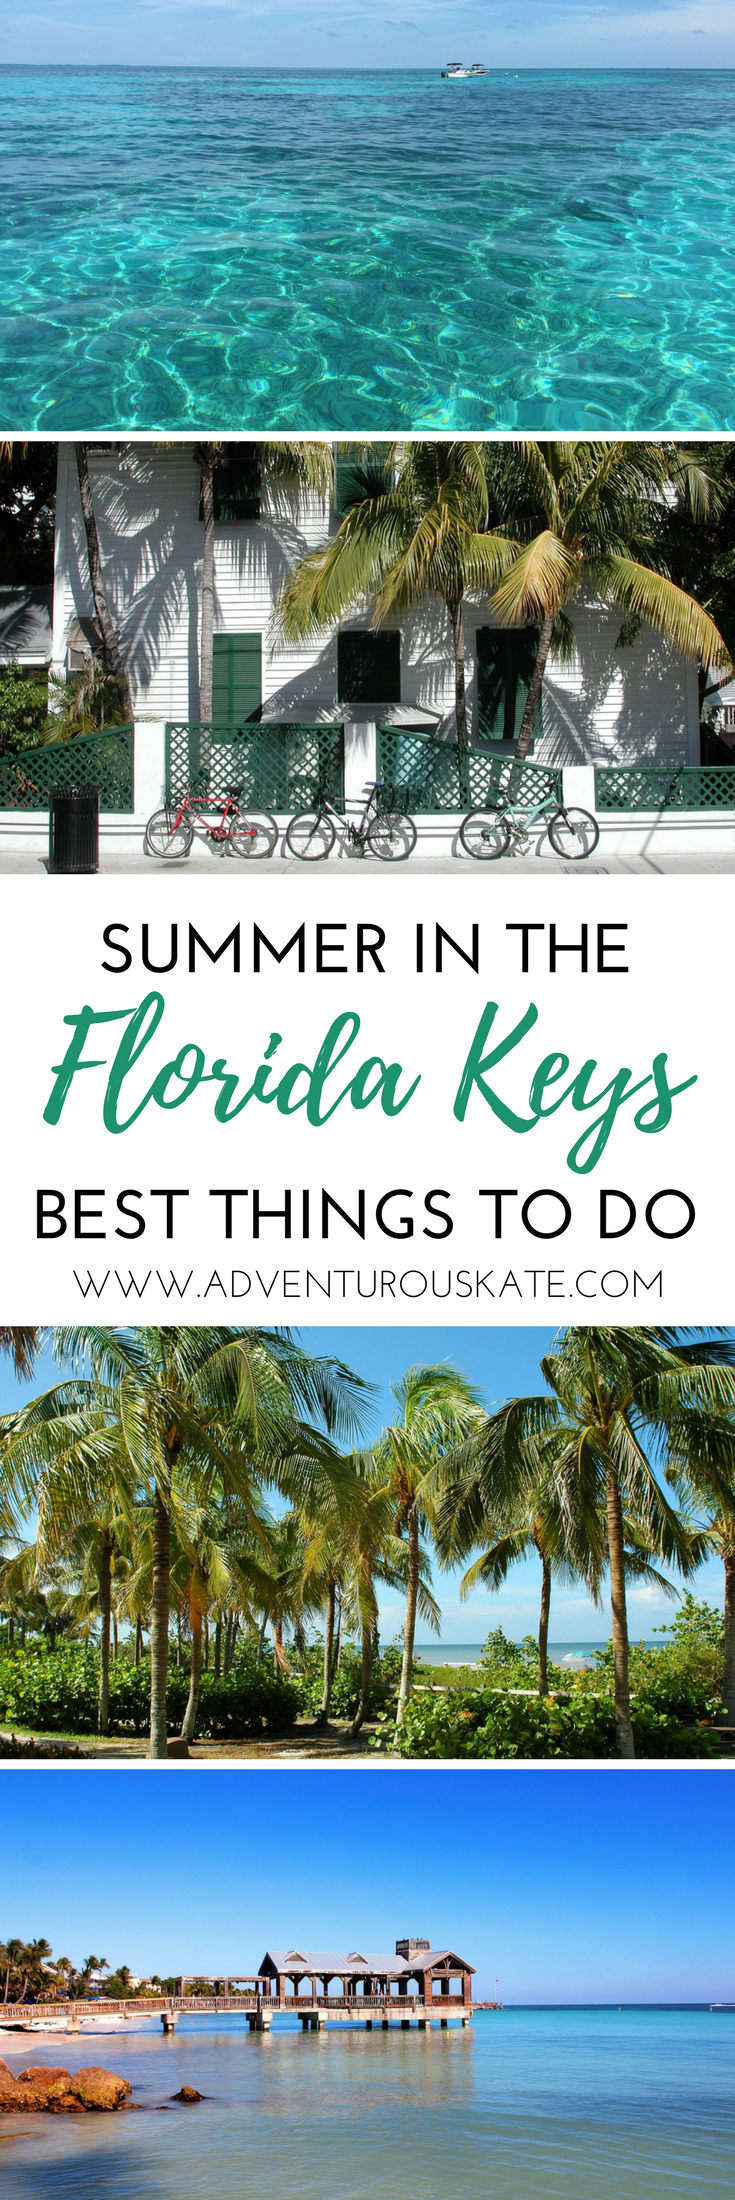 The ultimate guide to things to do in the Florida Keys. From where to find the best key lime pie to beautiful snorkeling beaches and even the top resorts and hotels to stay at while in the Keys. Road trip up and down the coast to make the most of your vacation. Travel in the Florida Keys. | Adventurous Kate: Solo Female Travel Blog #Florida